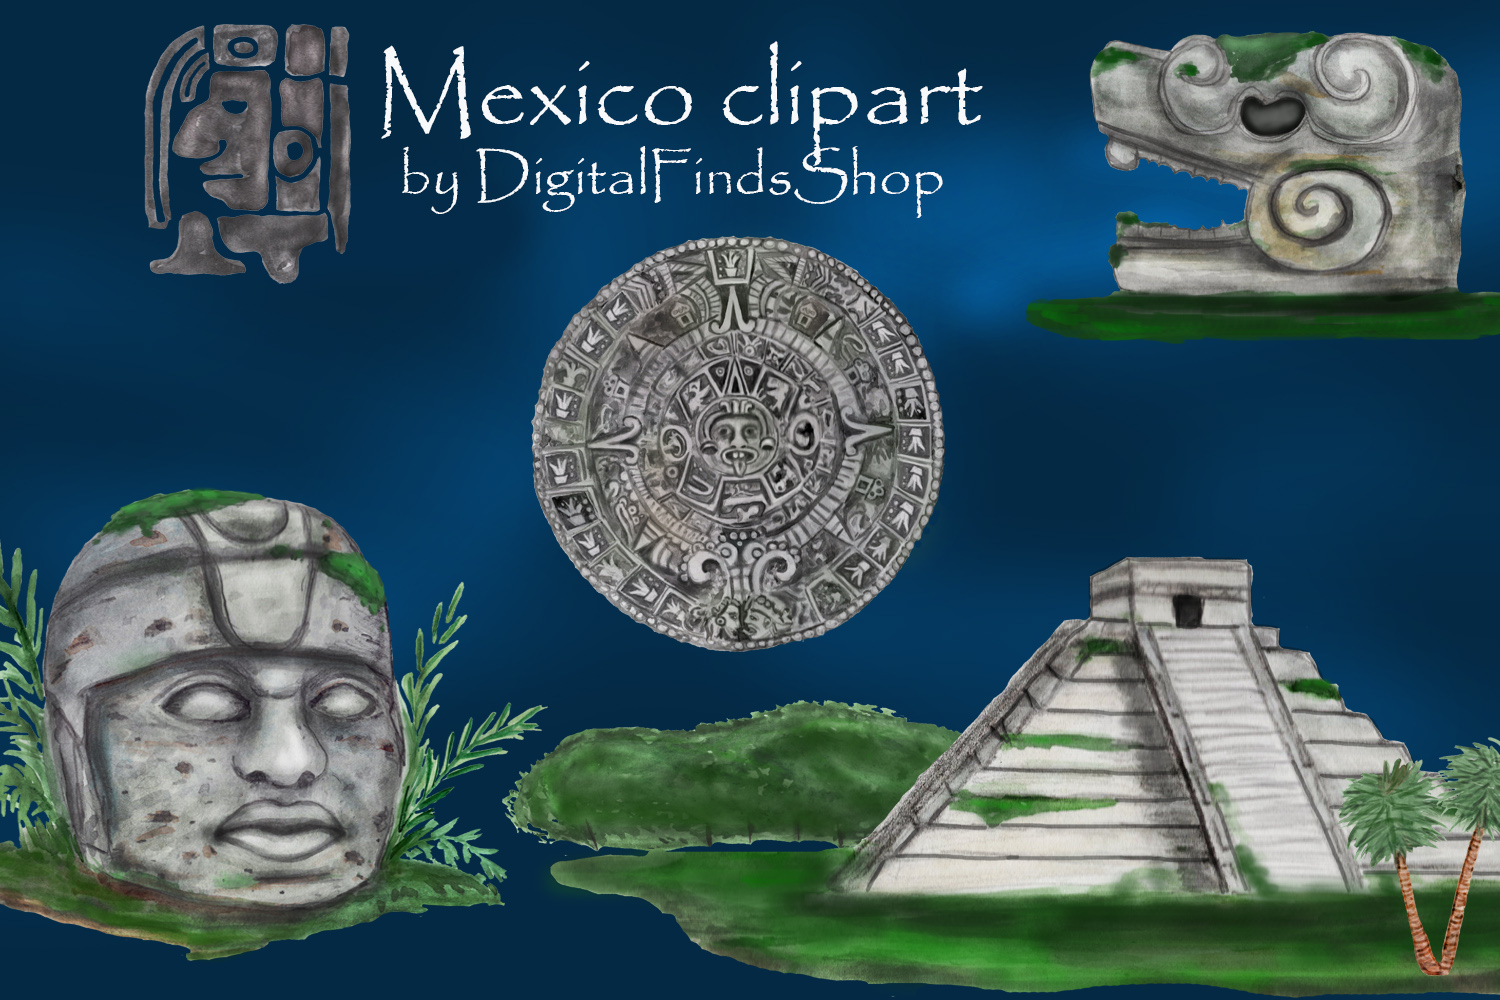 Mayan clipart, ancient civilizations of Mexico watercolor example image 1